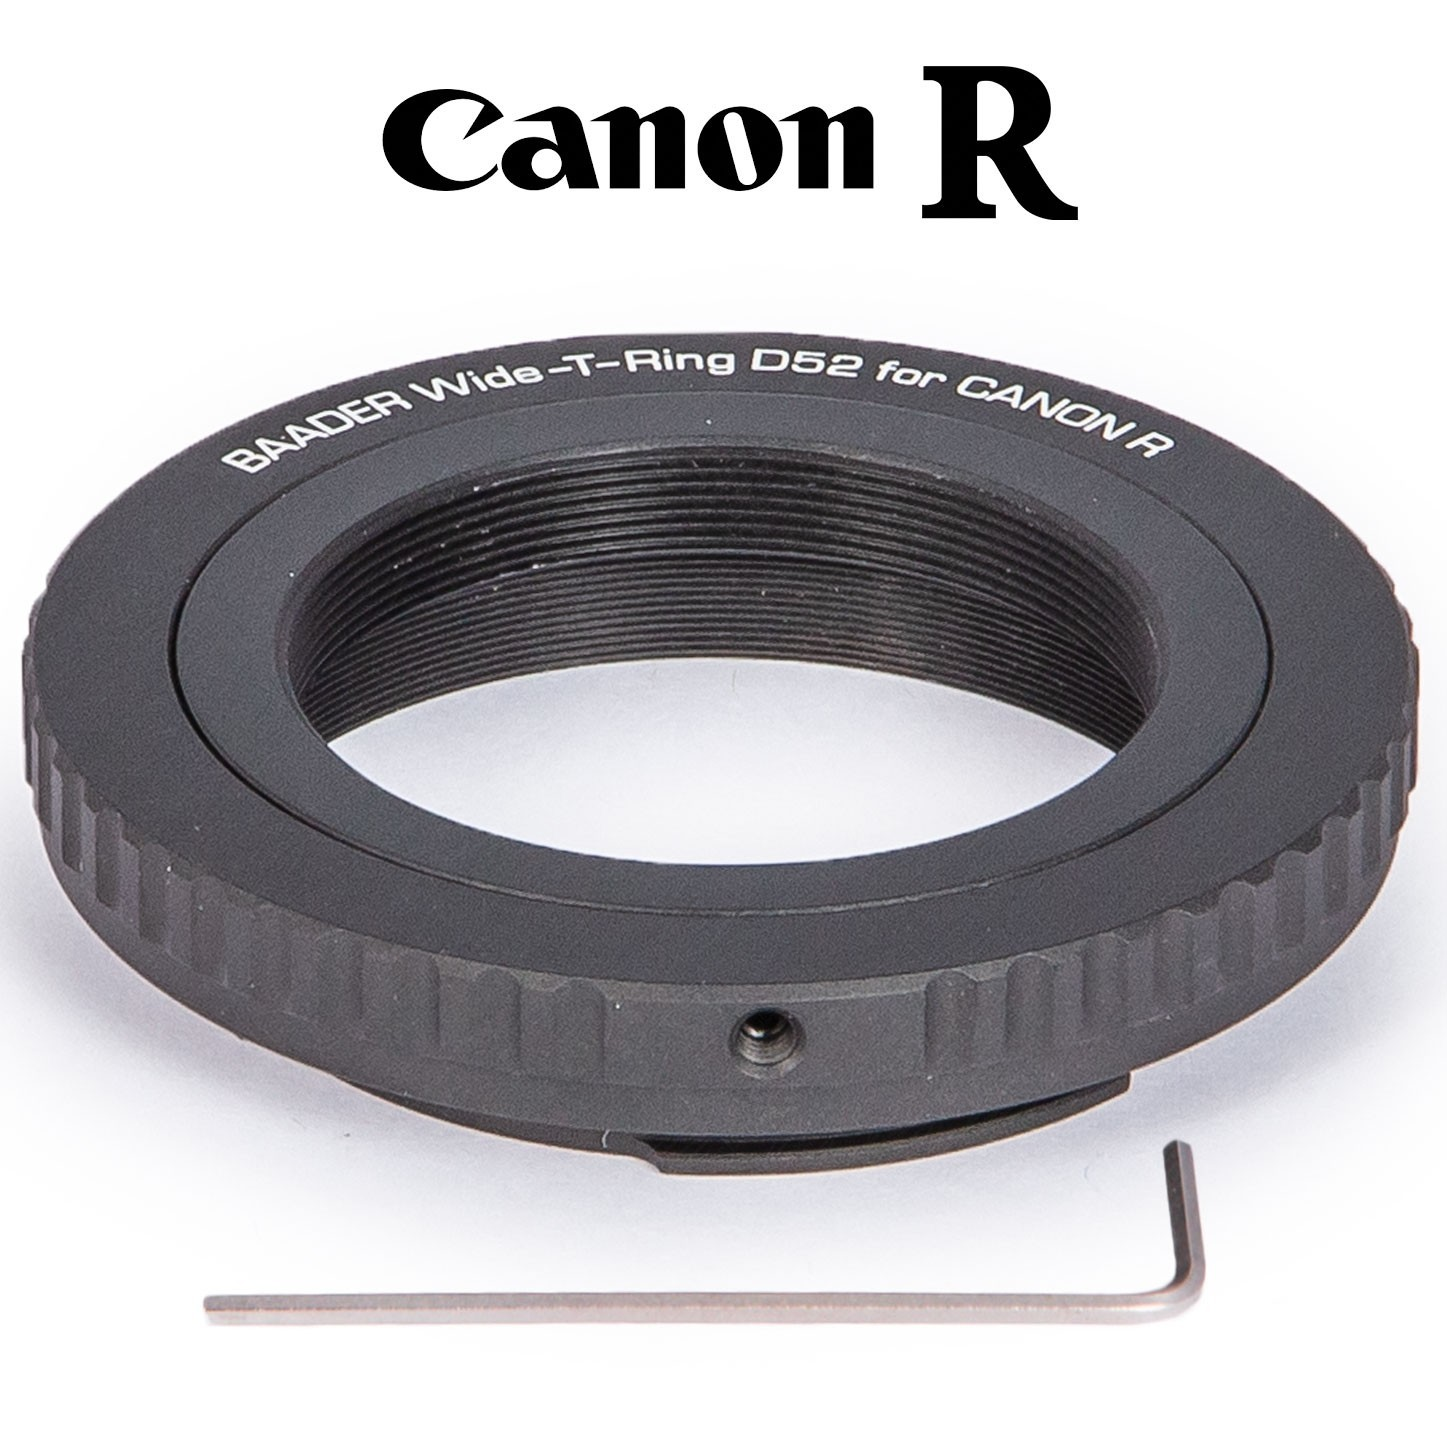 Wide T-Ring Canon R (for Canon R bajonet) with D52i to T-2 and S52